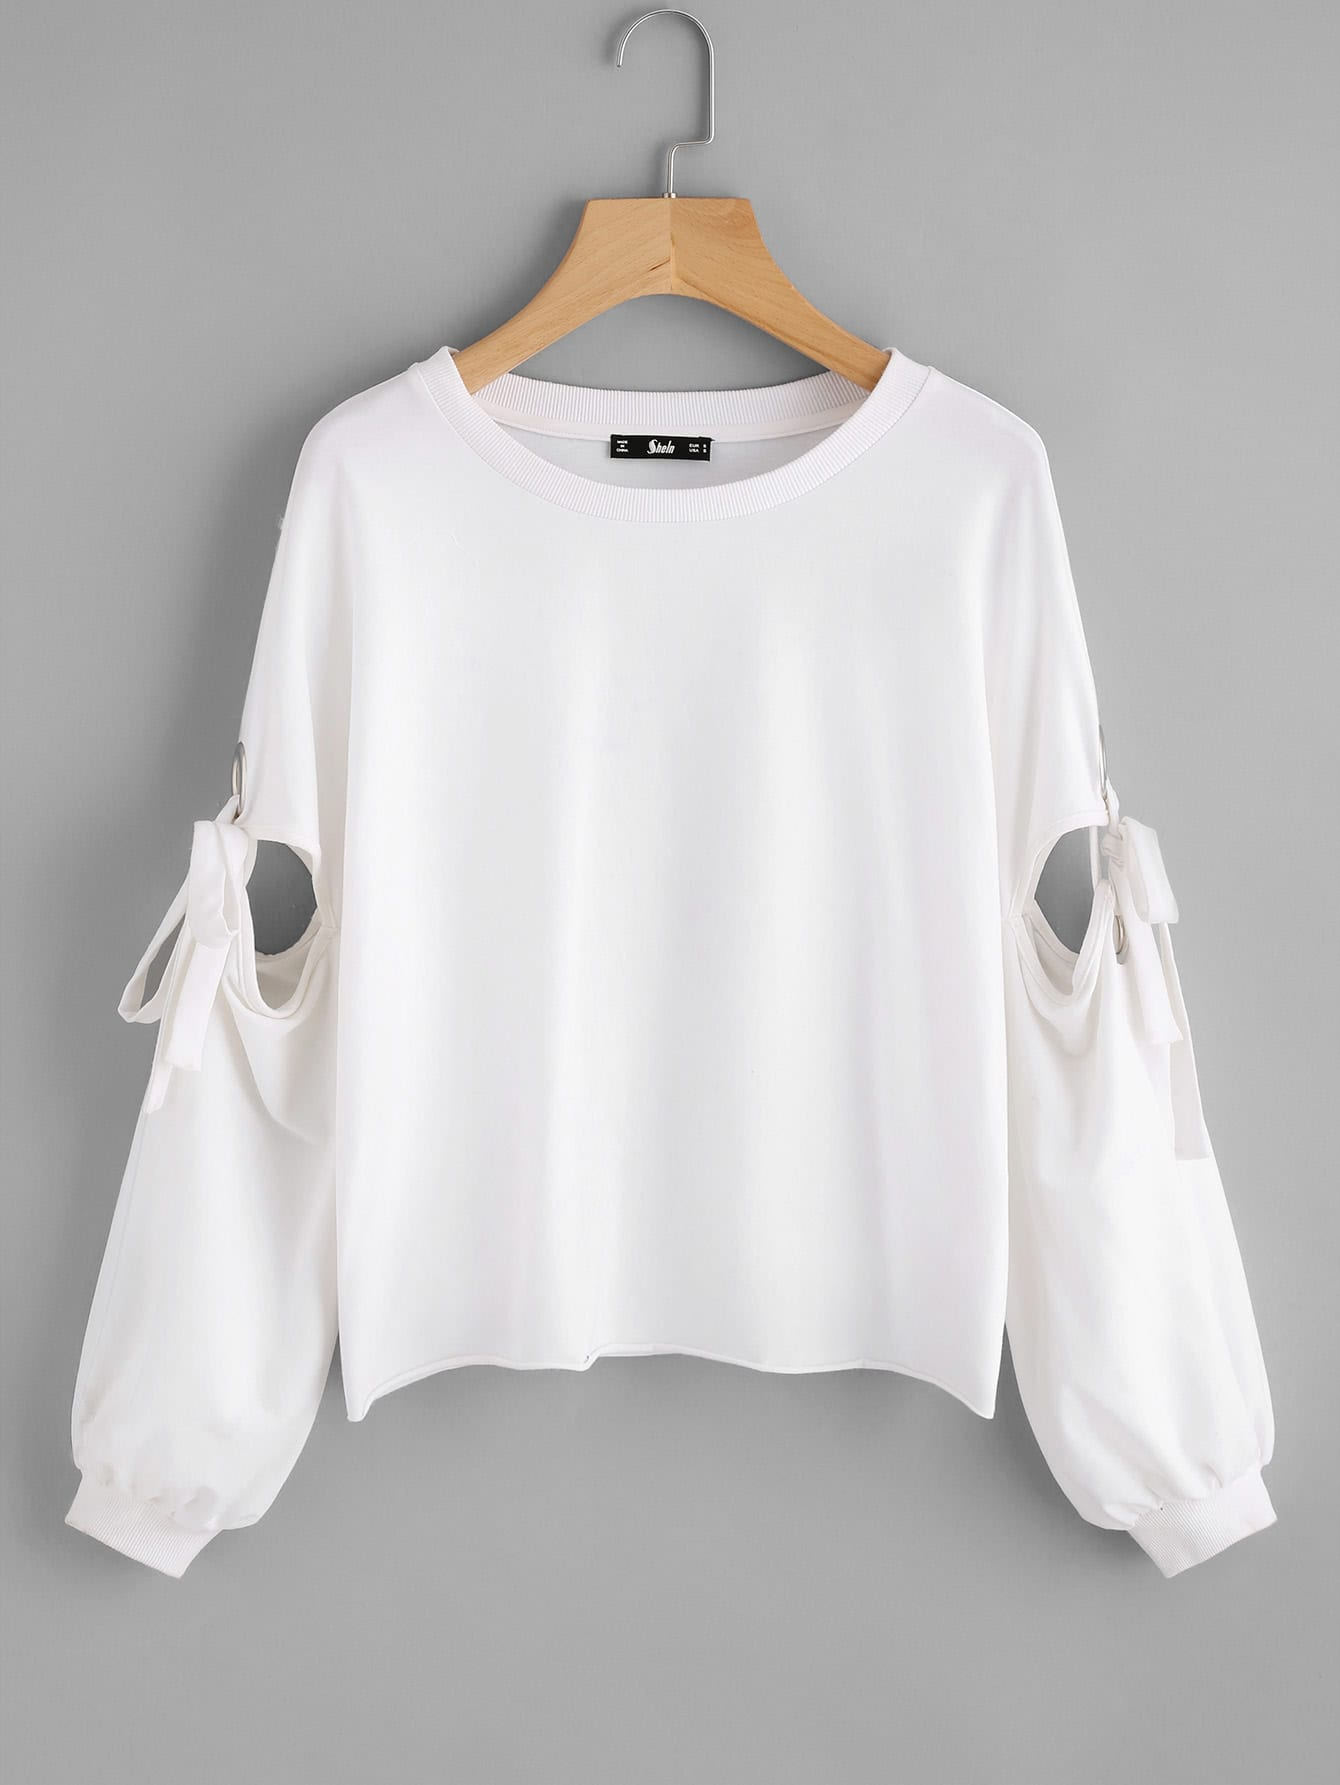 Grommet Detail Tied Open Sleeve Sweatshirt drop shoulder grommet tie detail sweatshirt